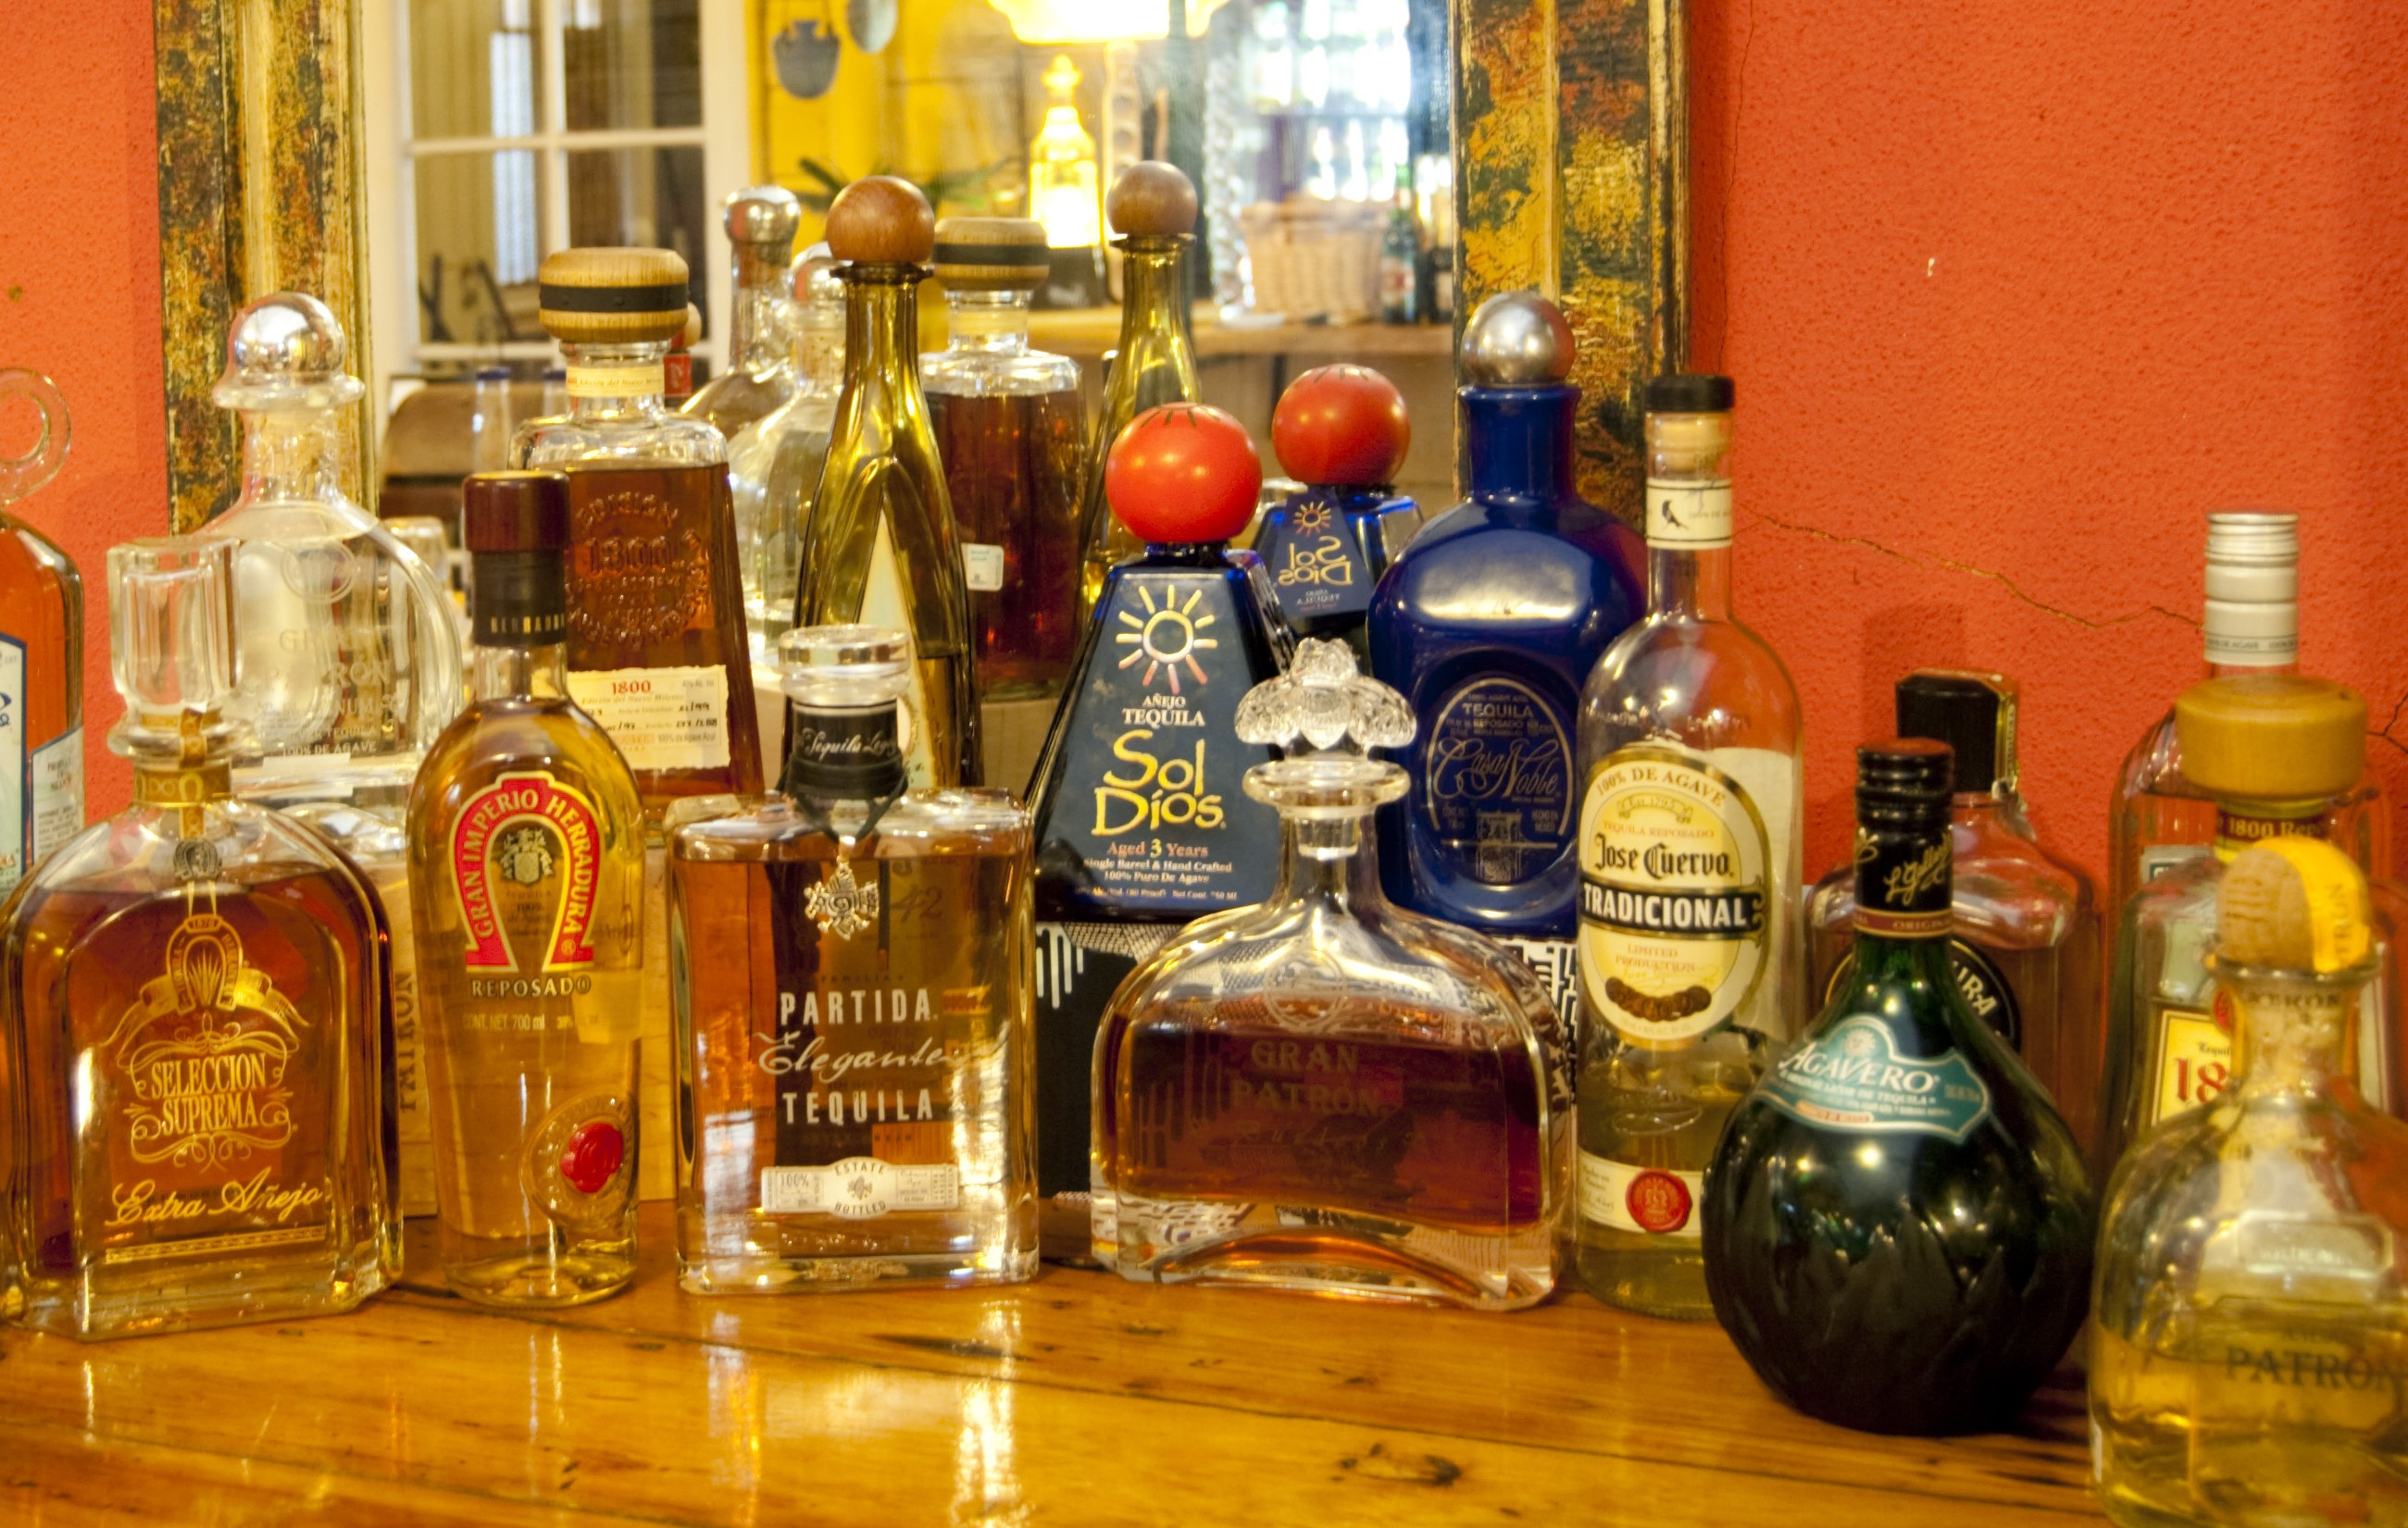 Top Most Expensive Tequila Bottles Ever In The World